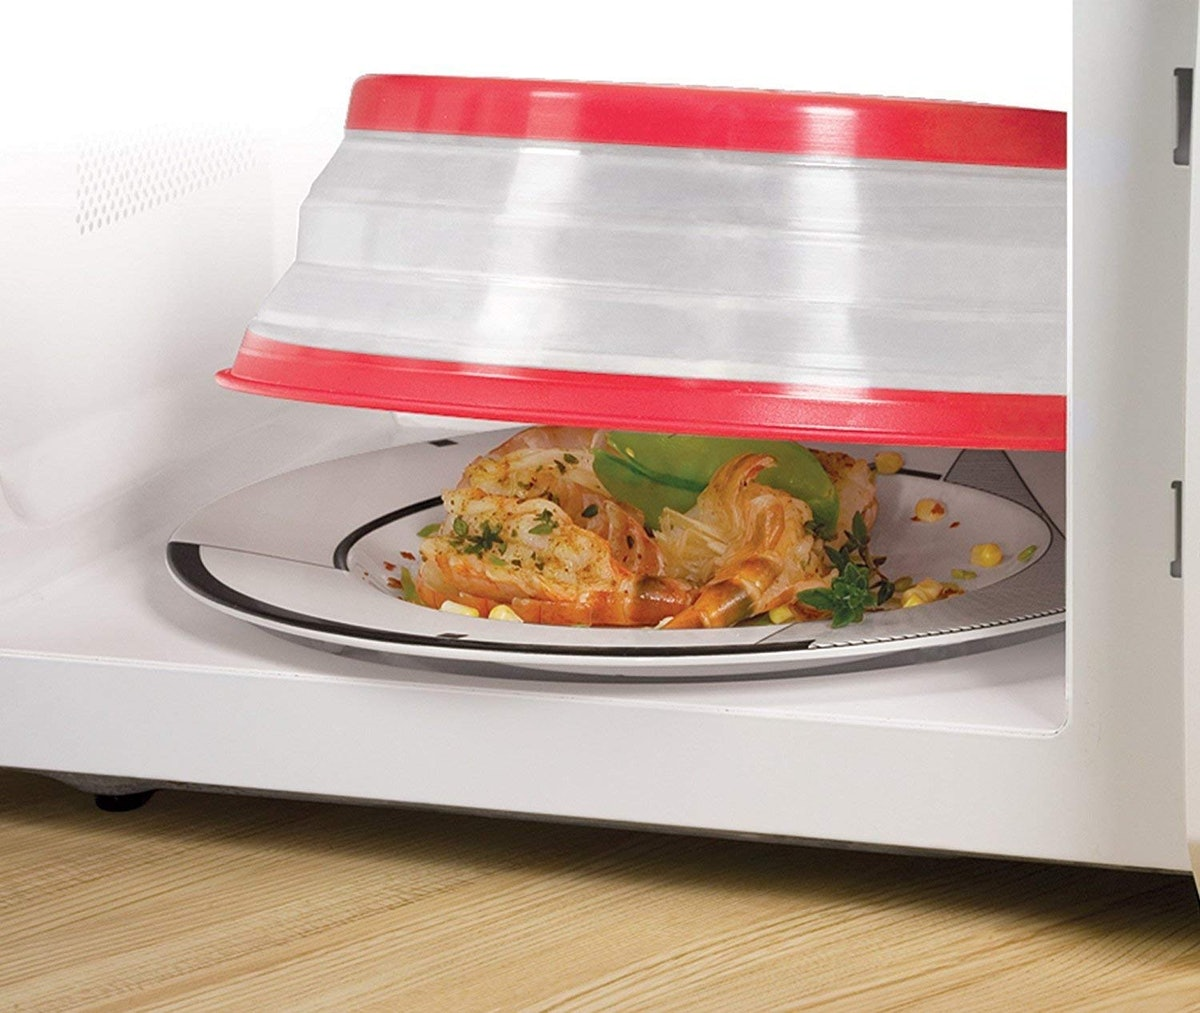 Tovolo Vented Collapsible Microwave Cover